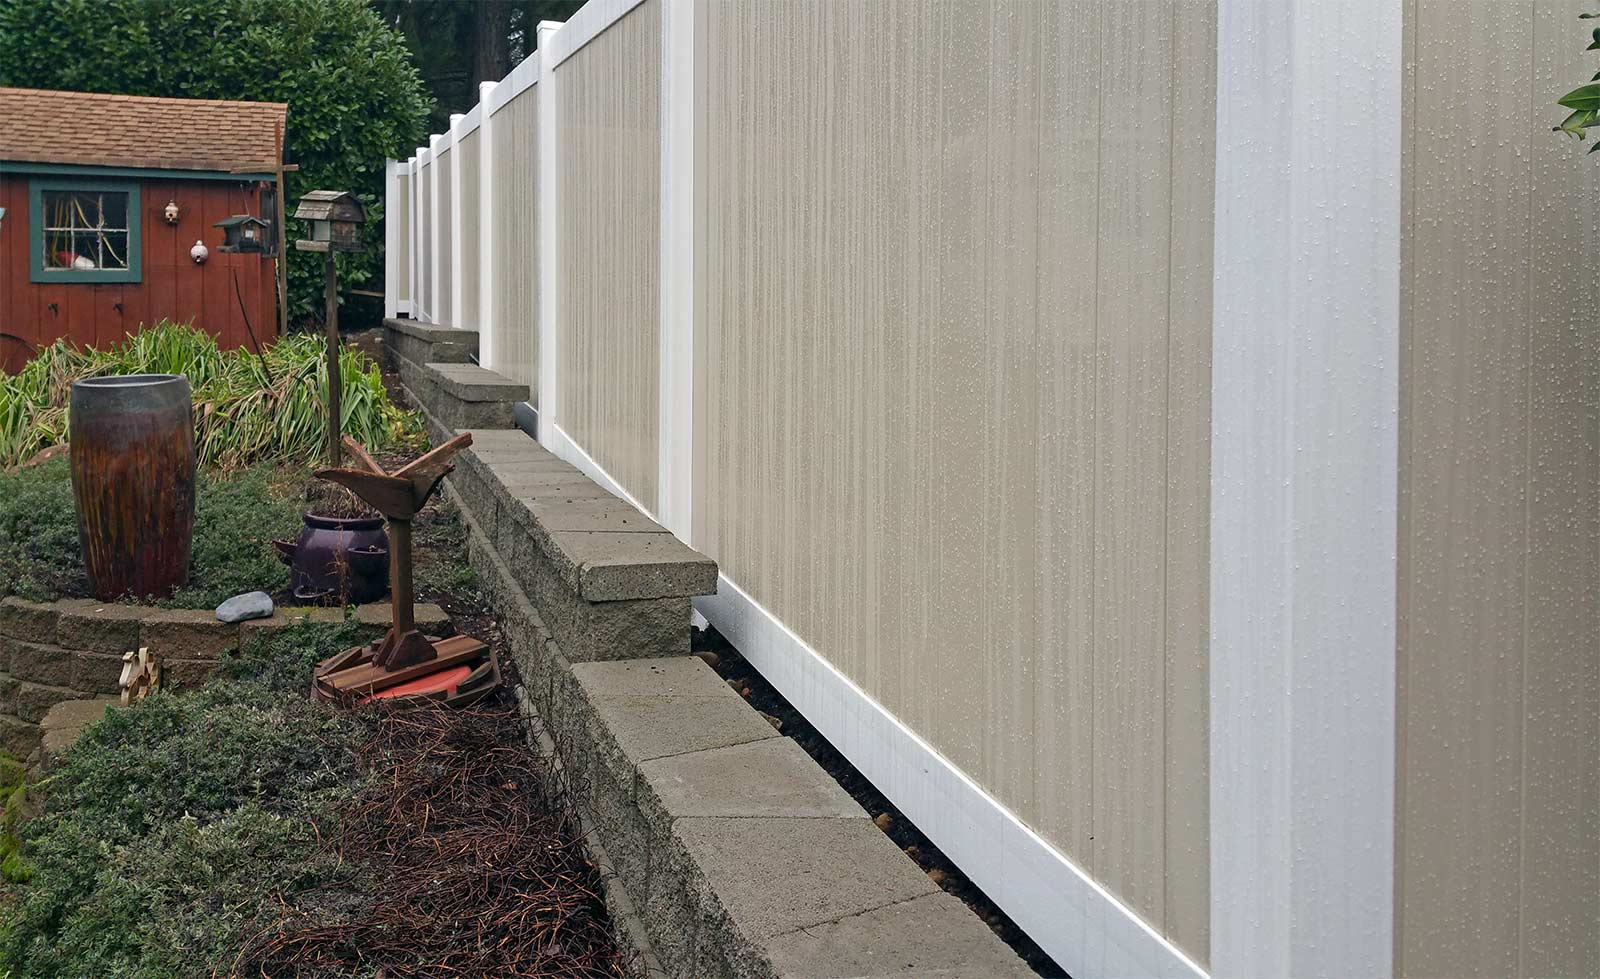 Tiered retaining wall with vinyl fencing in west olympia ajb durable vinyl fencing durable vinyl fencing baanklon Image collections